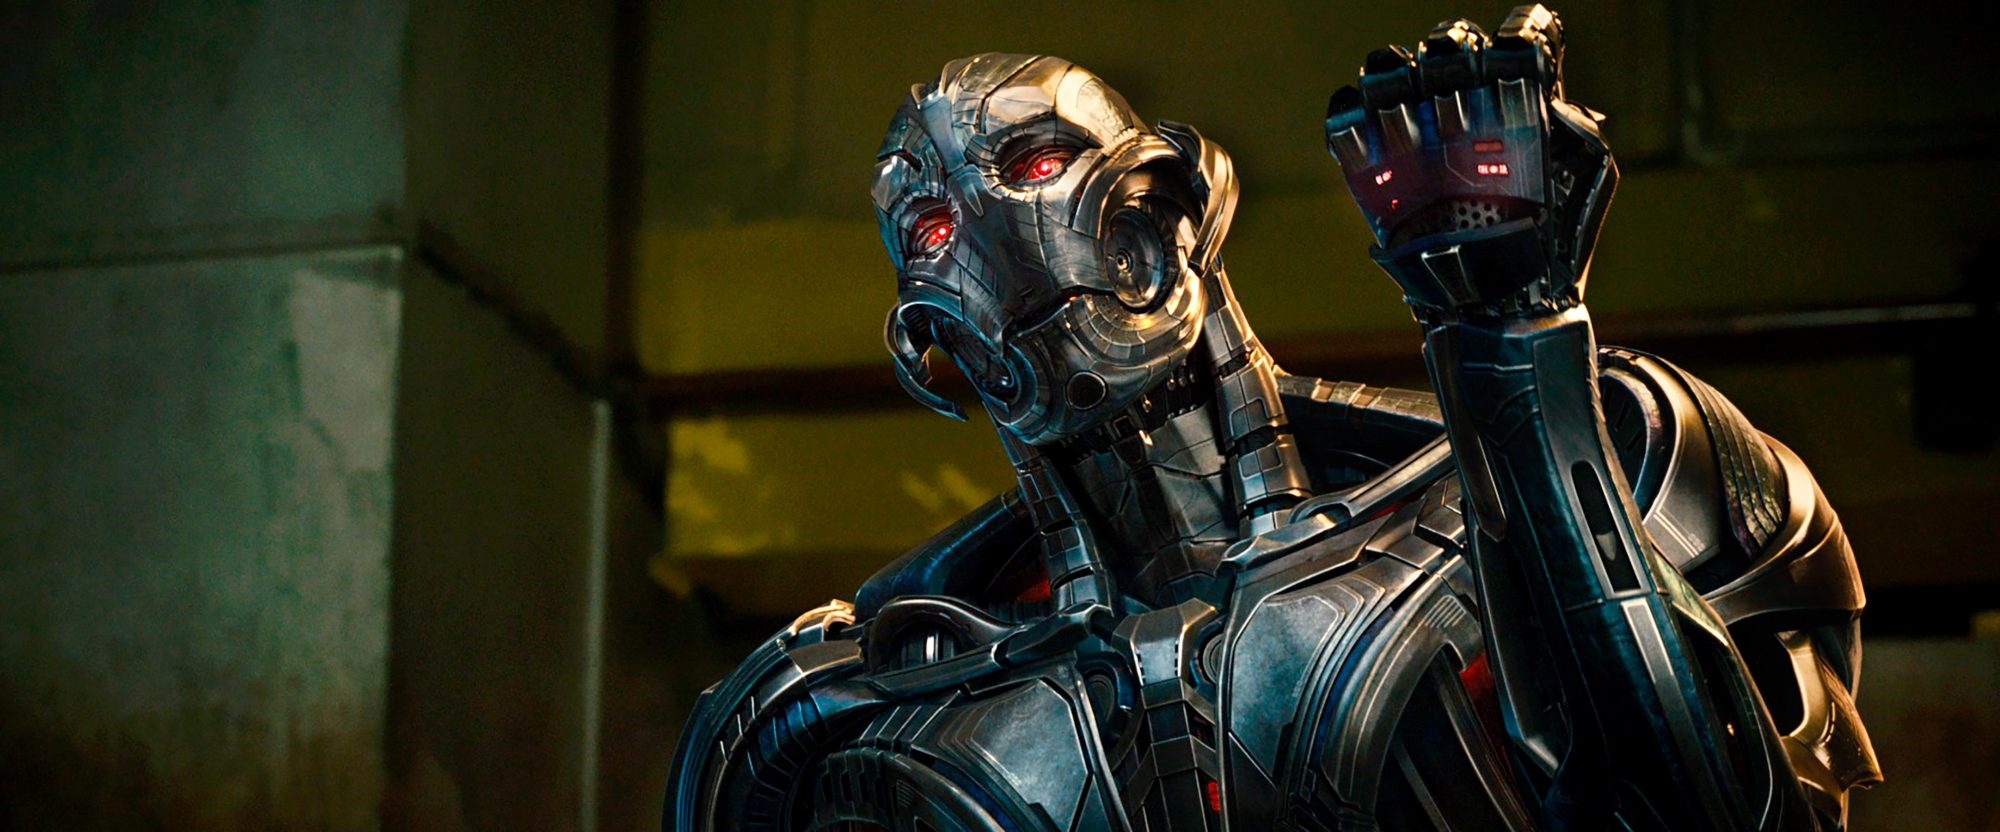 Avengers: Age Of Ultron (2015)Ultron Prime (voiced by James Spader)